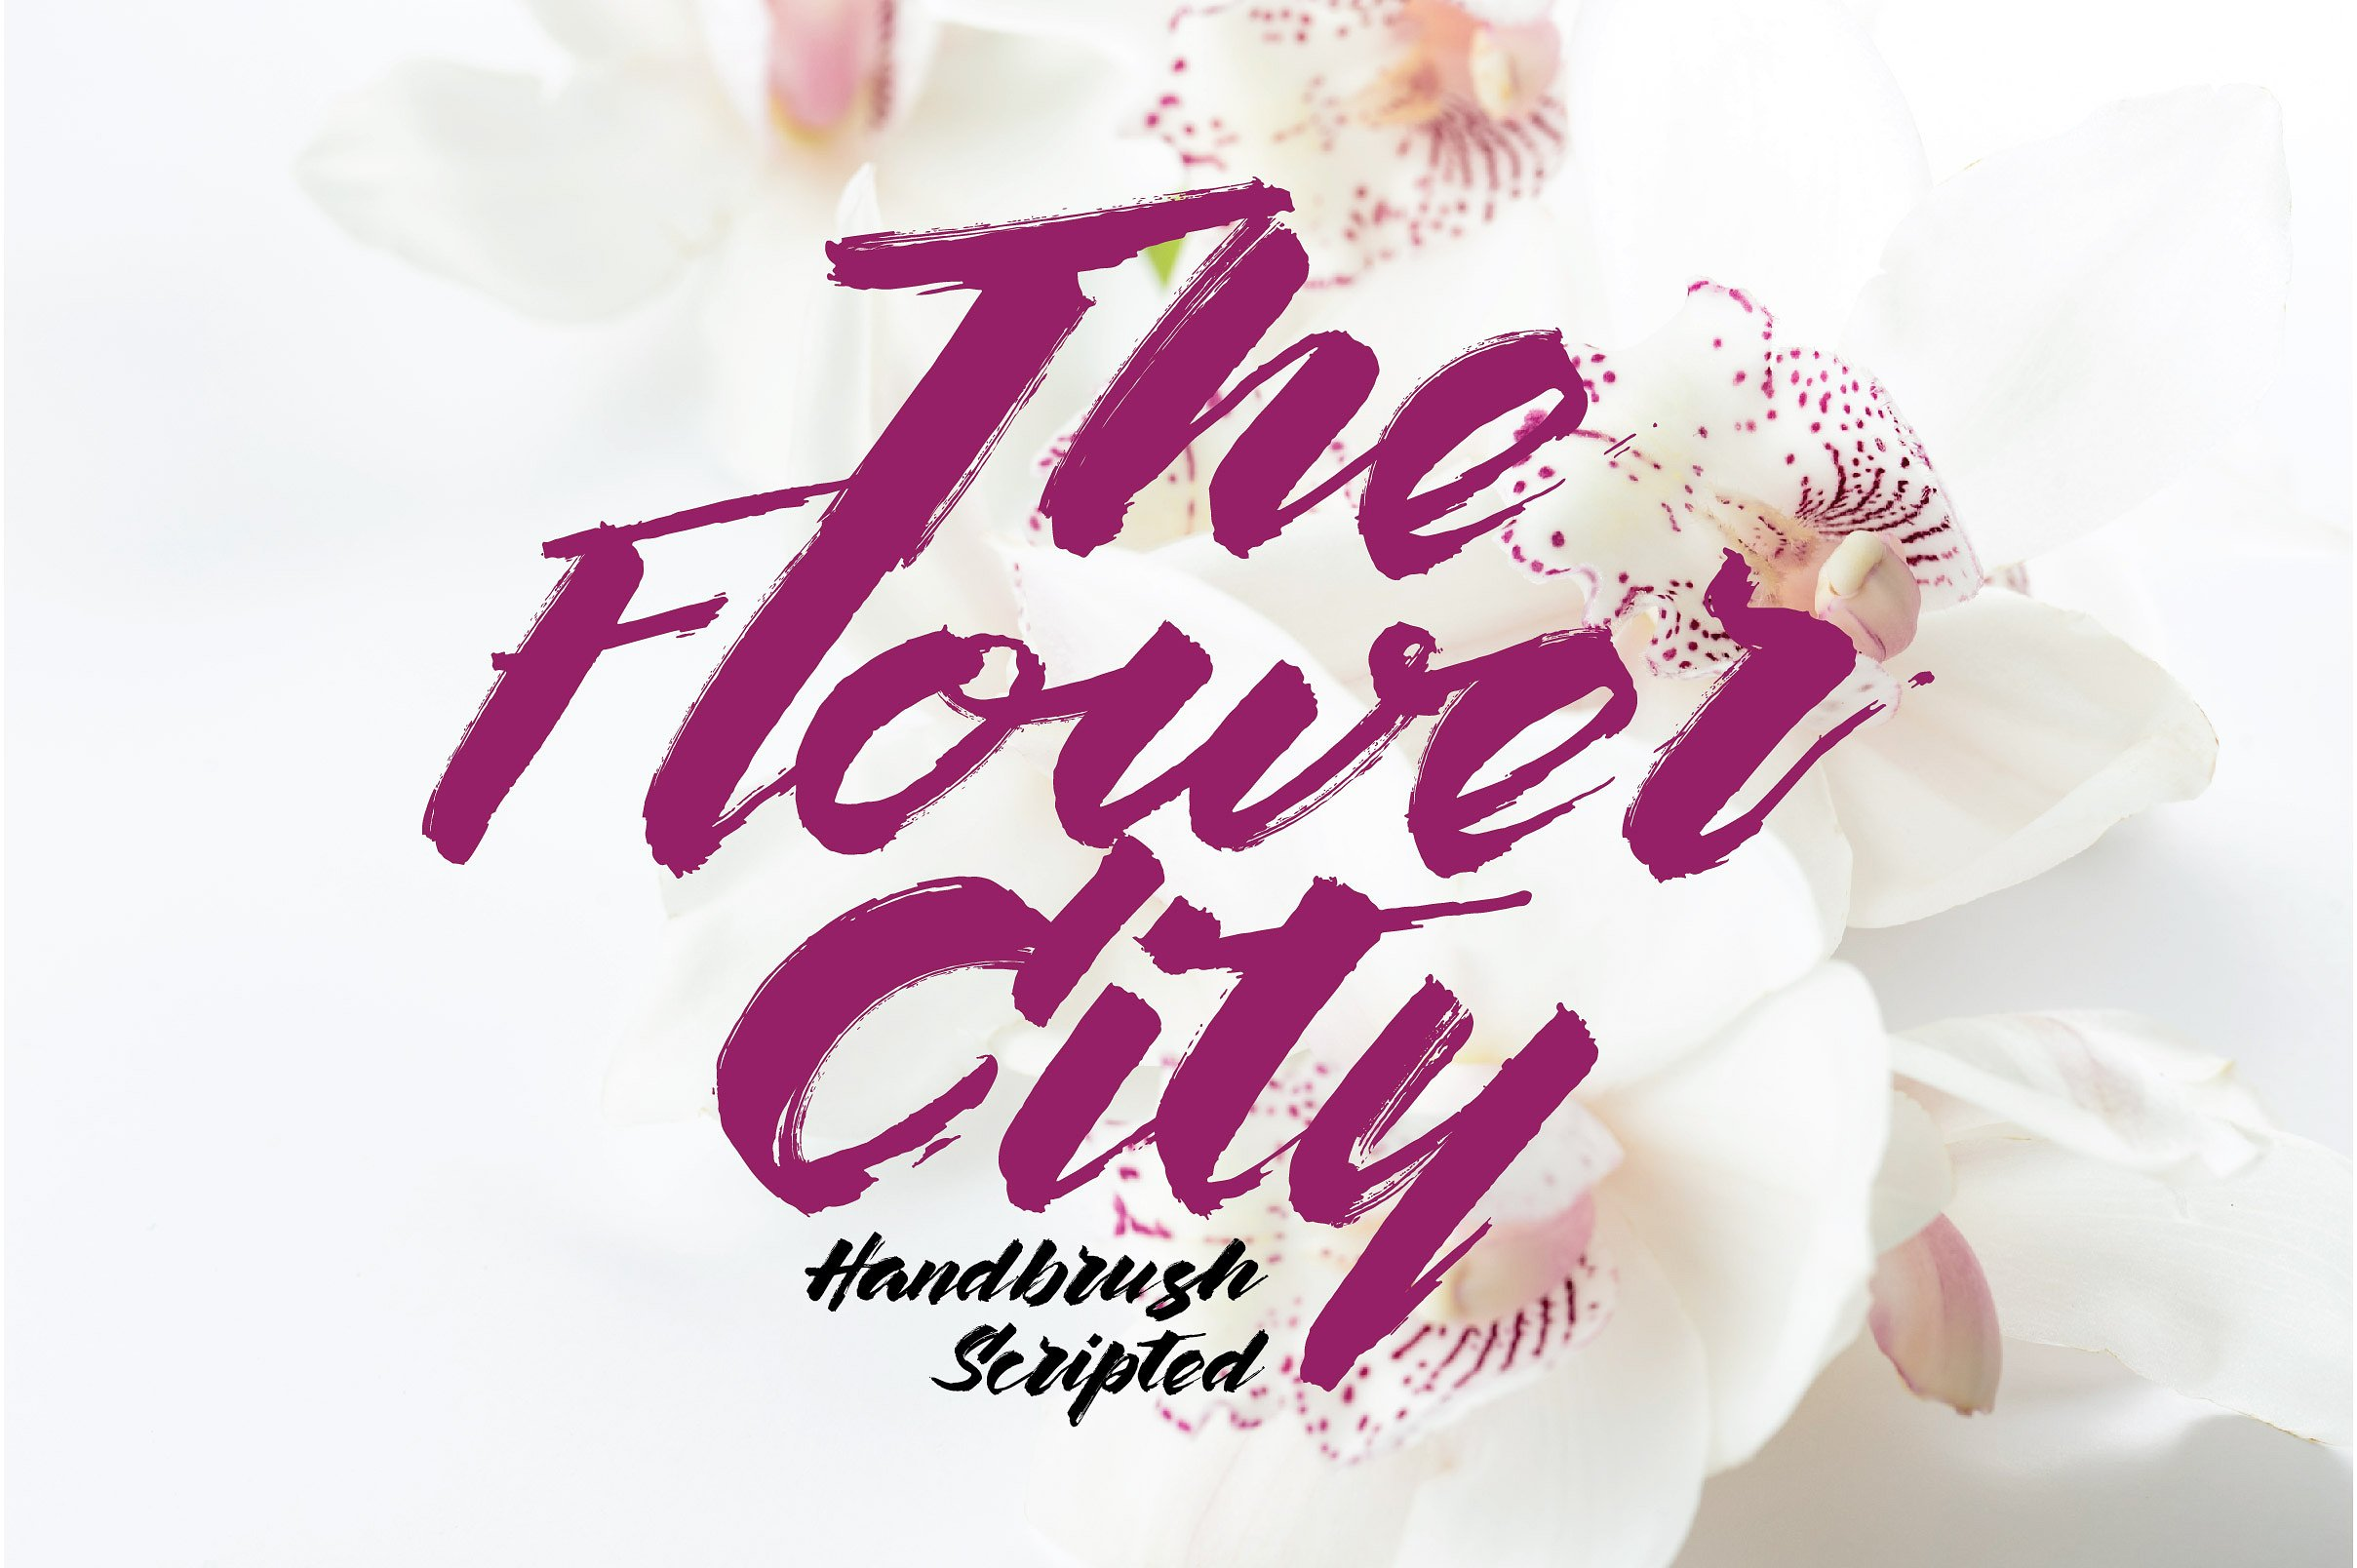 the-flower-city